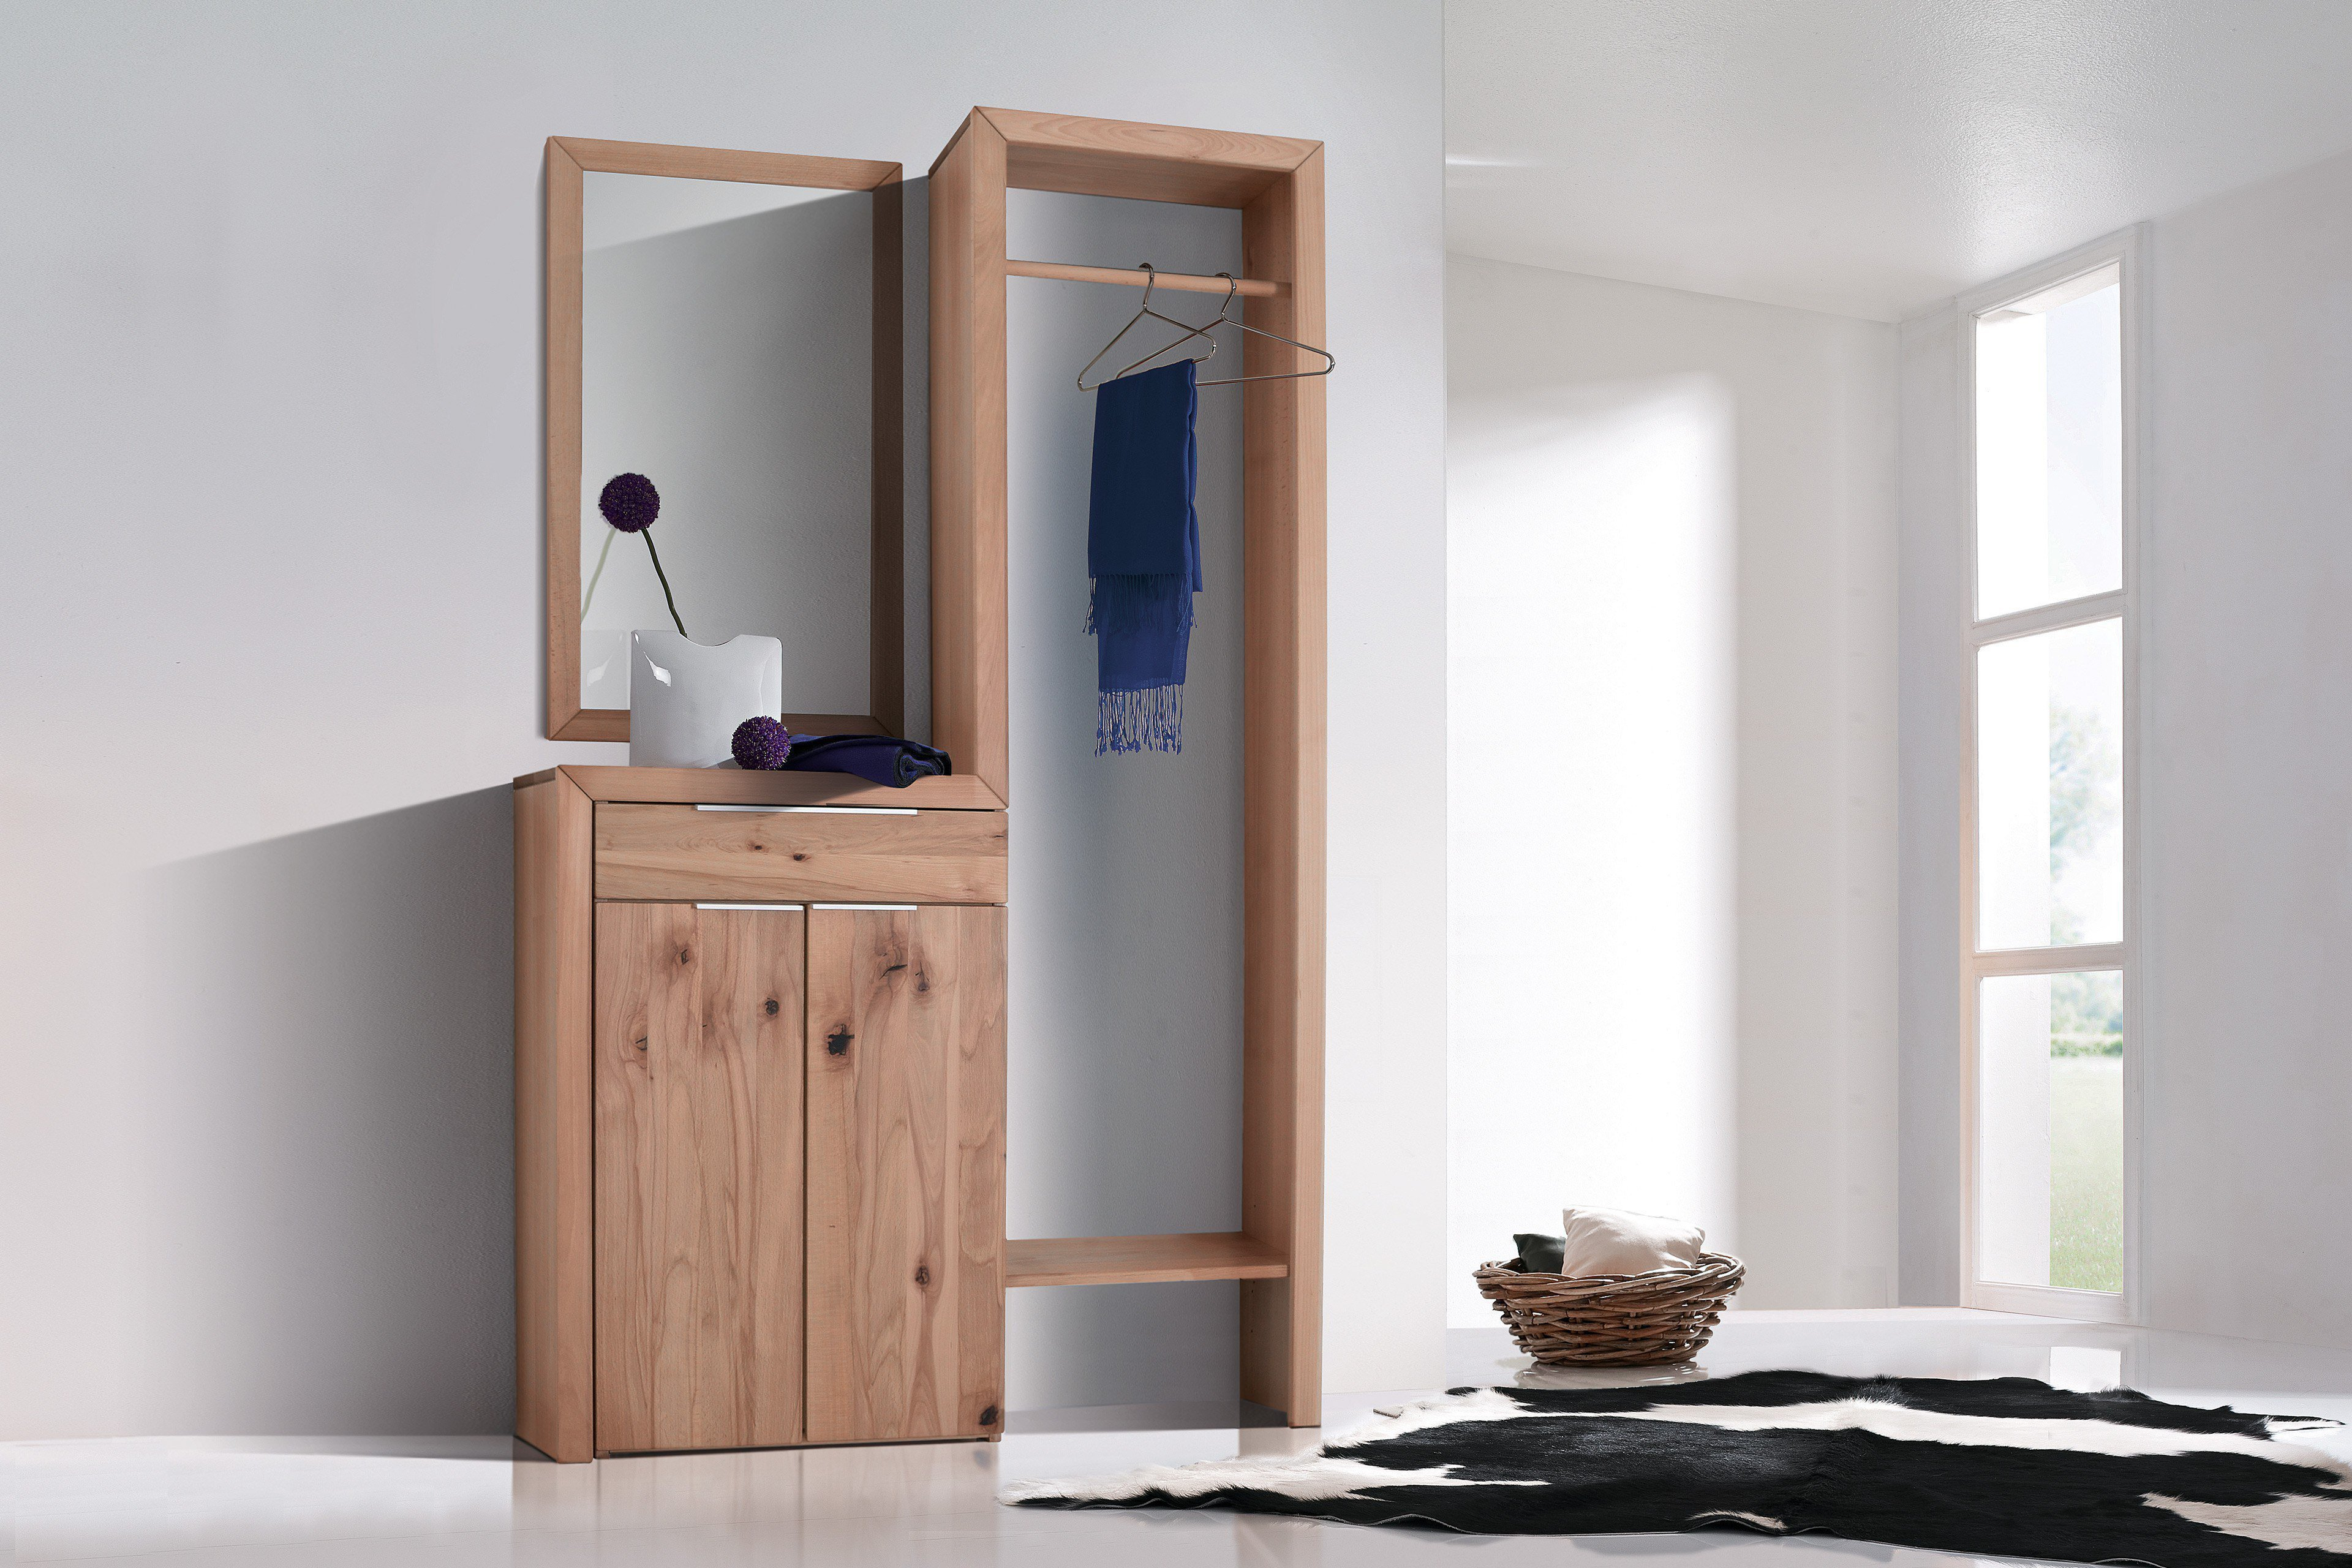 skandinavische garderobe laerke massiv kernbuche m bel letz ihr online shop. Black Bedroom Furniture Sets. Home Design Ideas